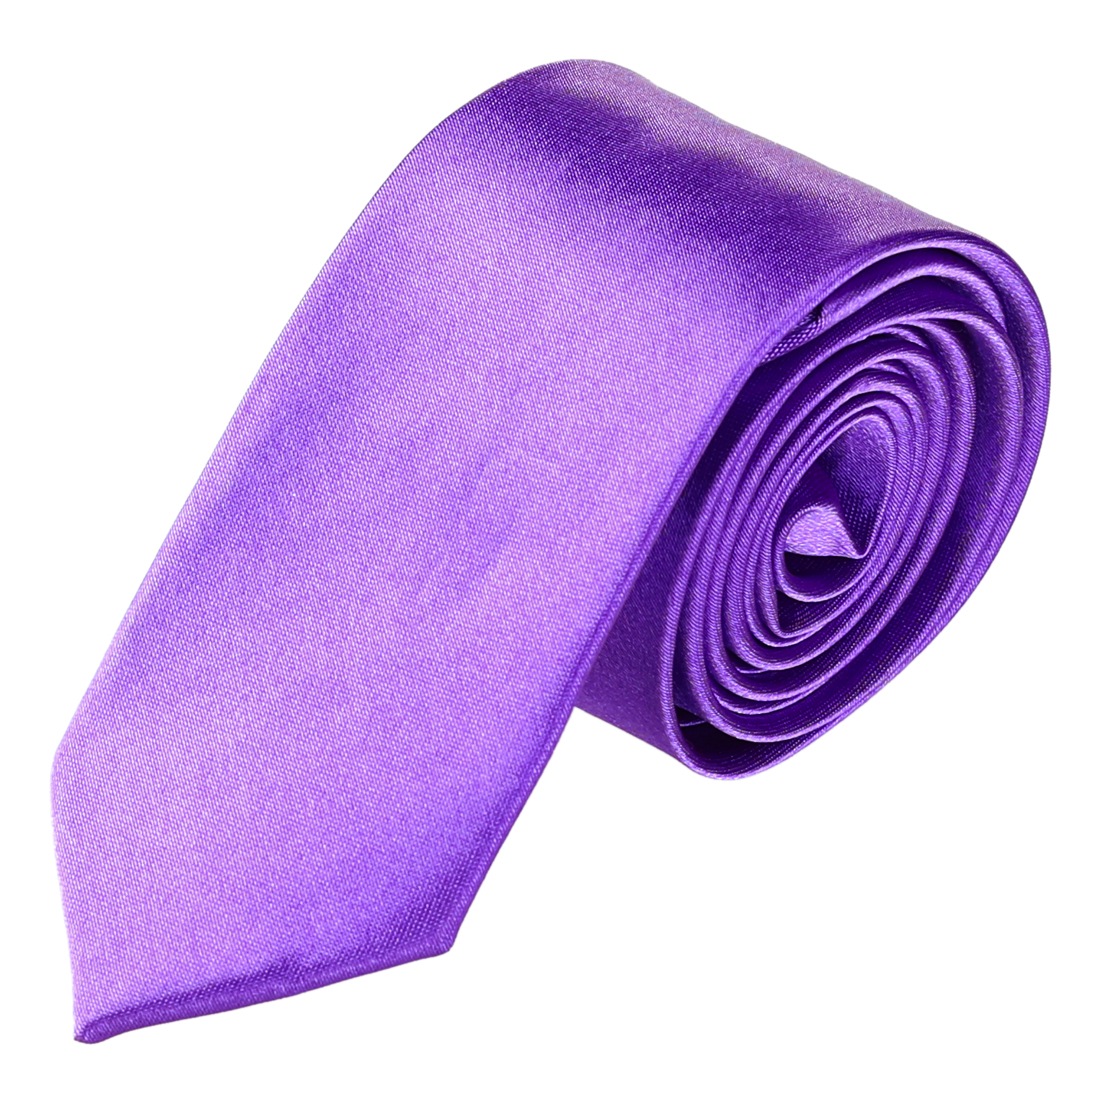 "Suits Detail 2"" Wide Amaranth Polyester Self Tie Skinny Necktie for Woman"